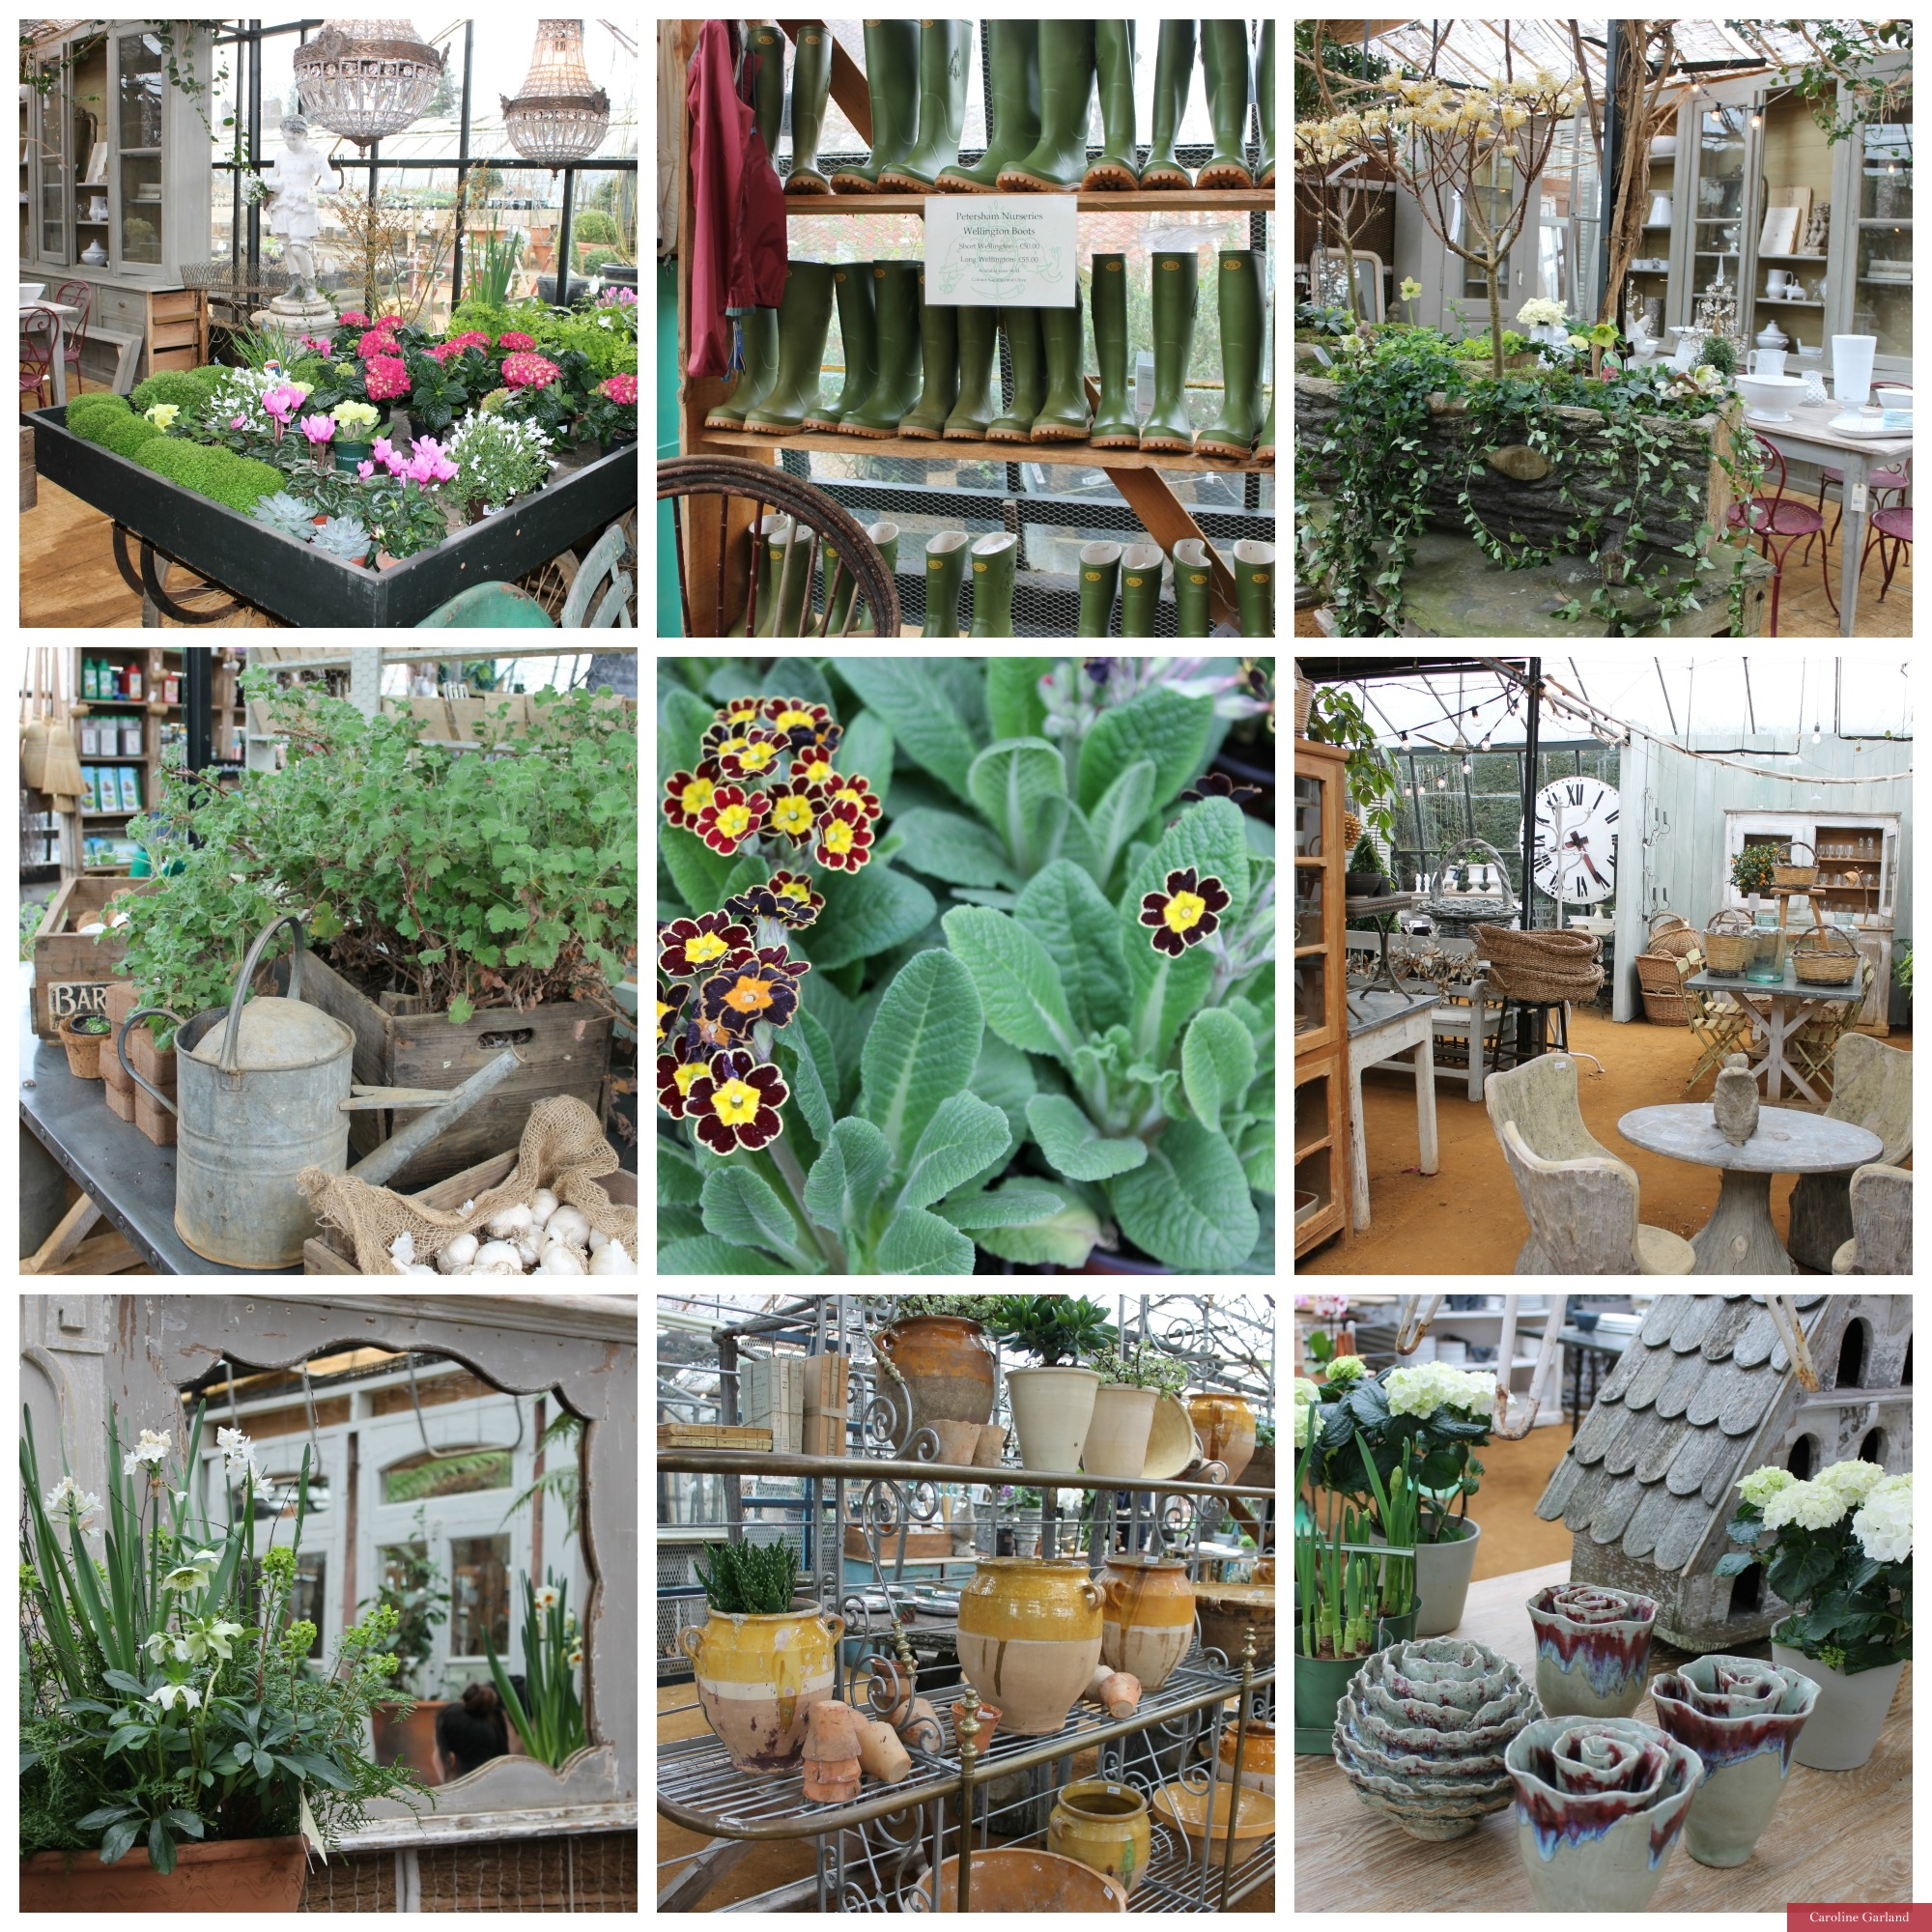 A visit to Petersham Nurseries